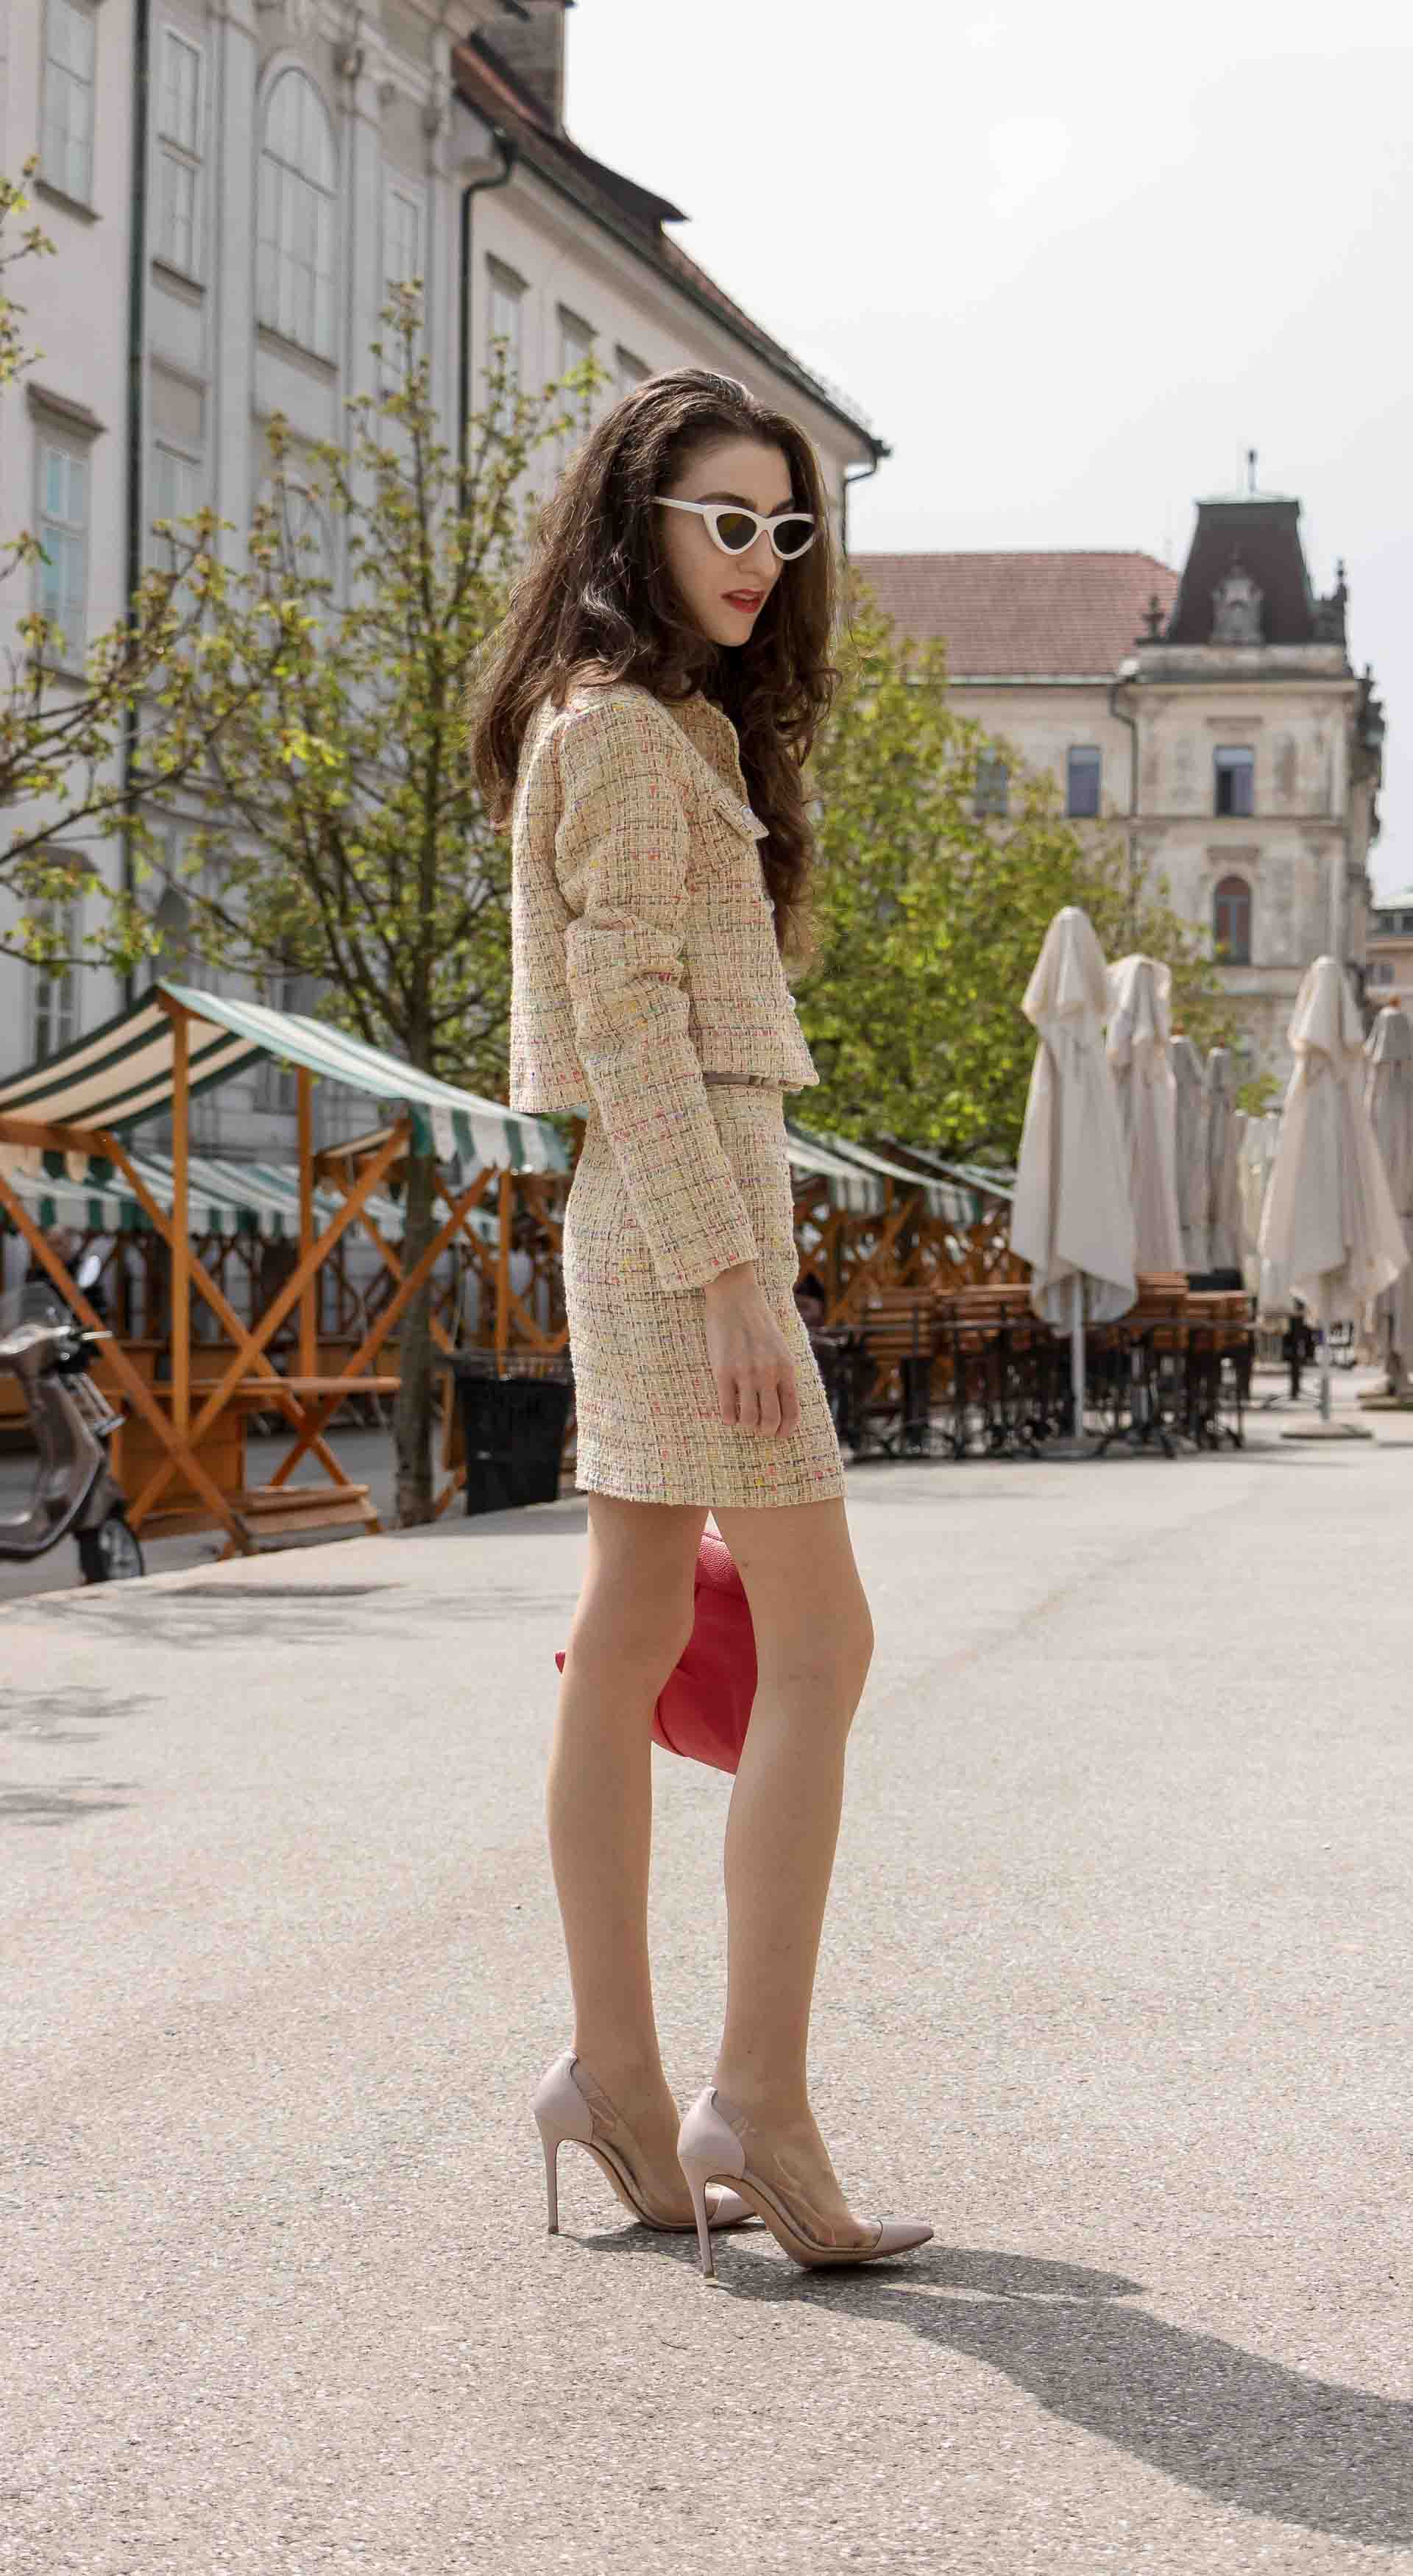 Fashion Blogger Veronika Lipar of Brunette from Wall Street wearing Storets yellow tweed mini skirt suit, Gianvito Rossi plexi pumps, See by Chloe pink top handle bag, Adam Selman x Lespecs white Lolita sunglasses walking on the street in Ljubljana Slovenia